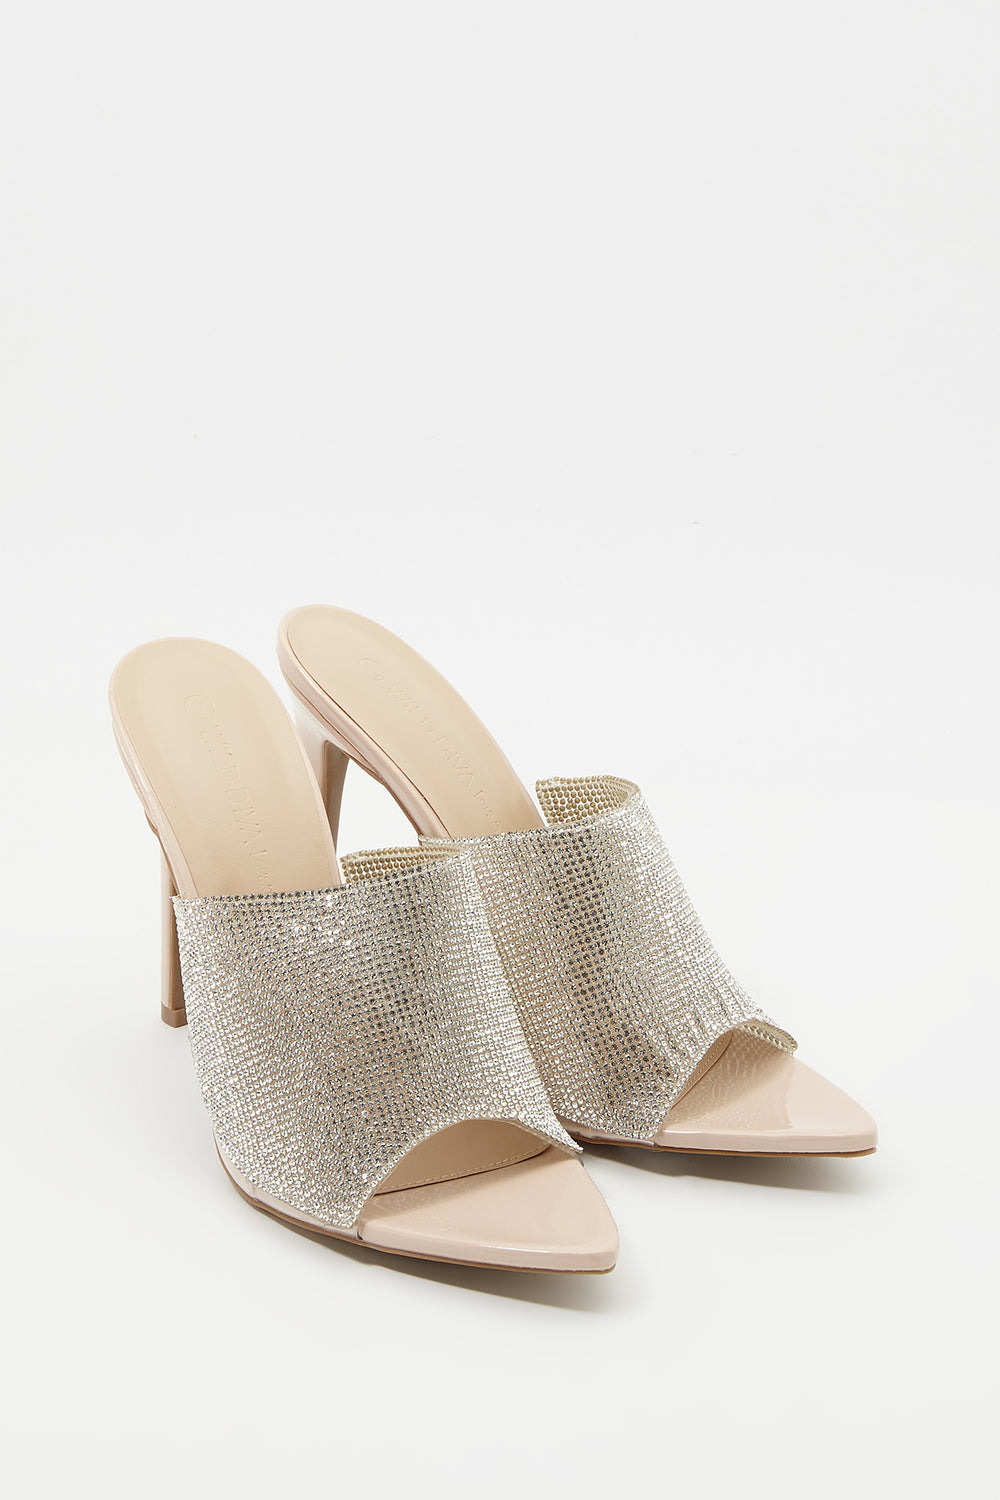 Rhinestone Pointed Mule Sandal Natural